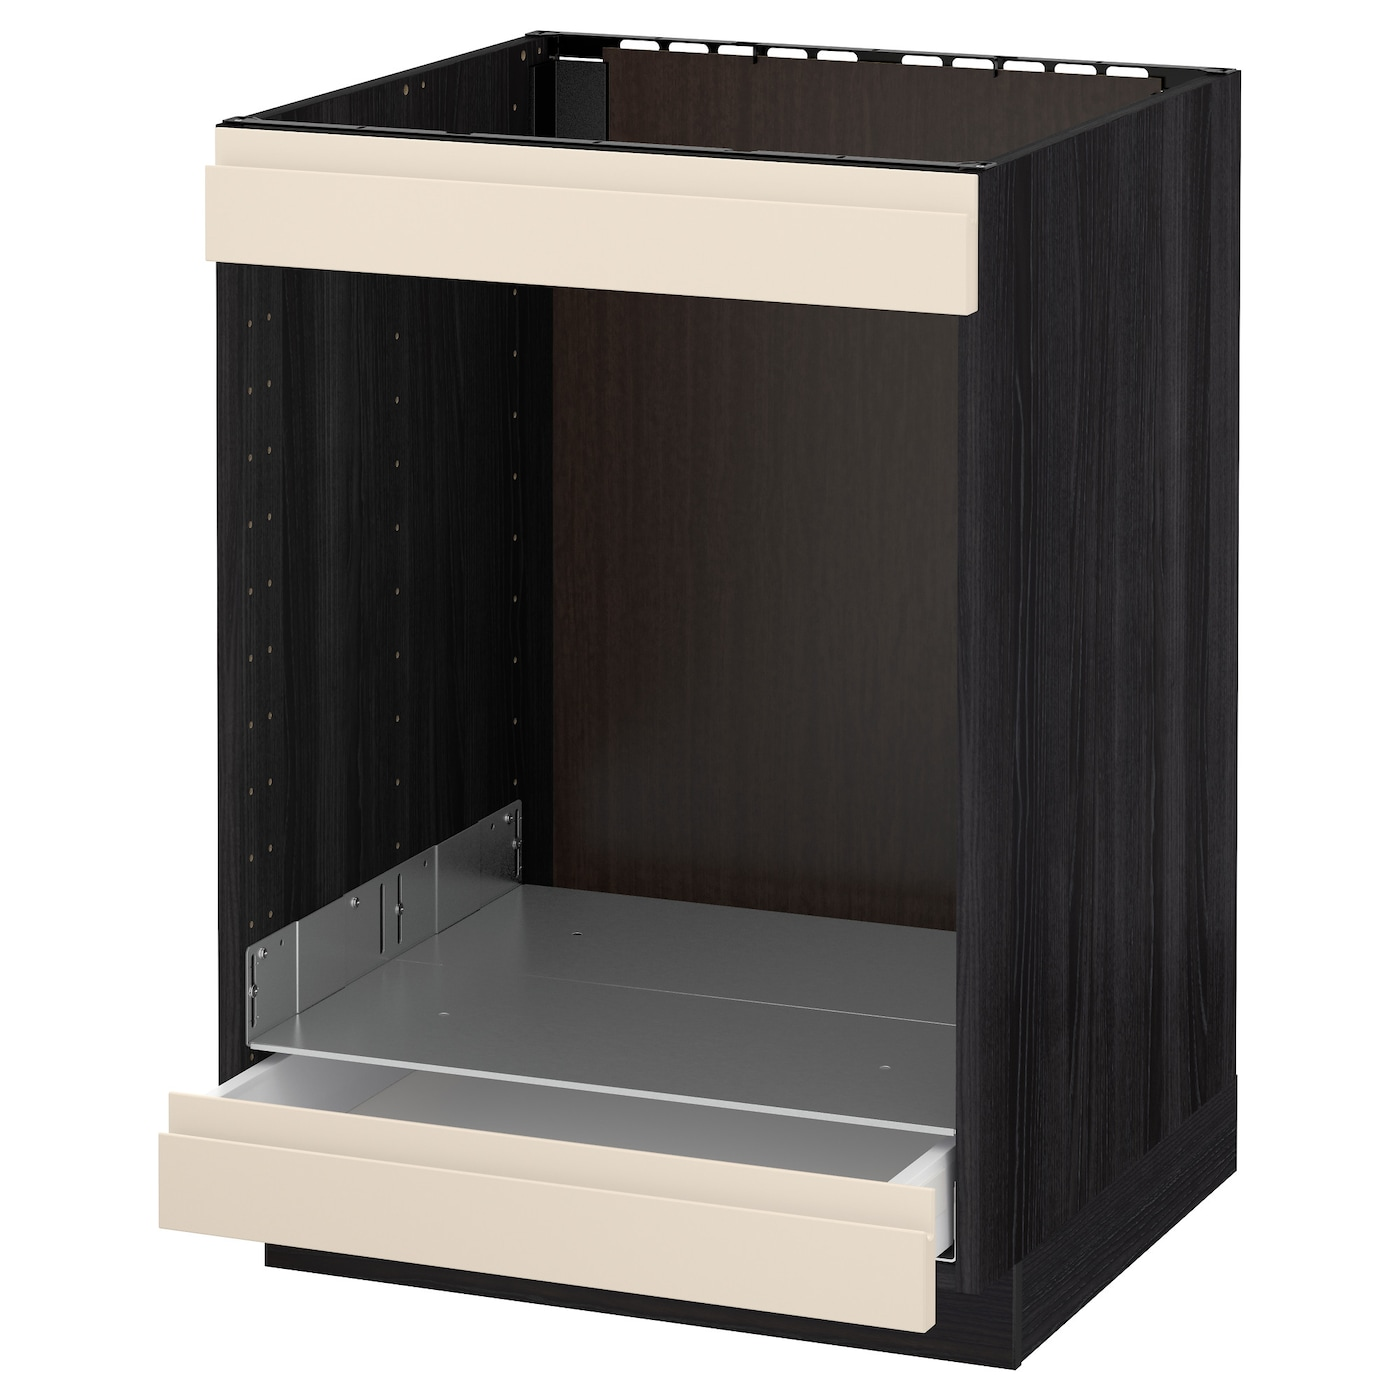 IKEA METOD/MAXIMERA base cab for hob+oven w drawer Sturdy frame construction, 18 mm thick.